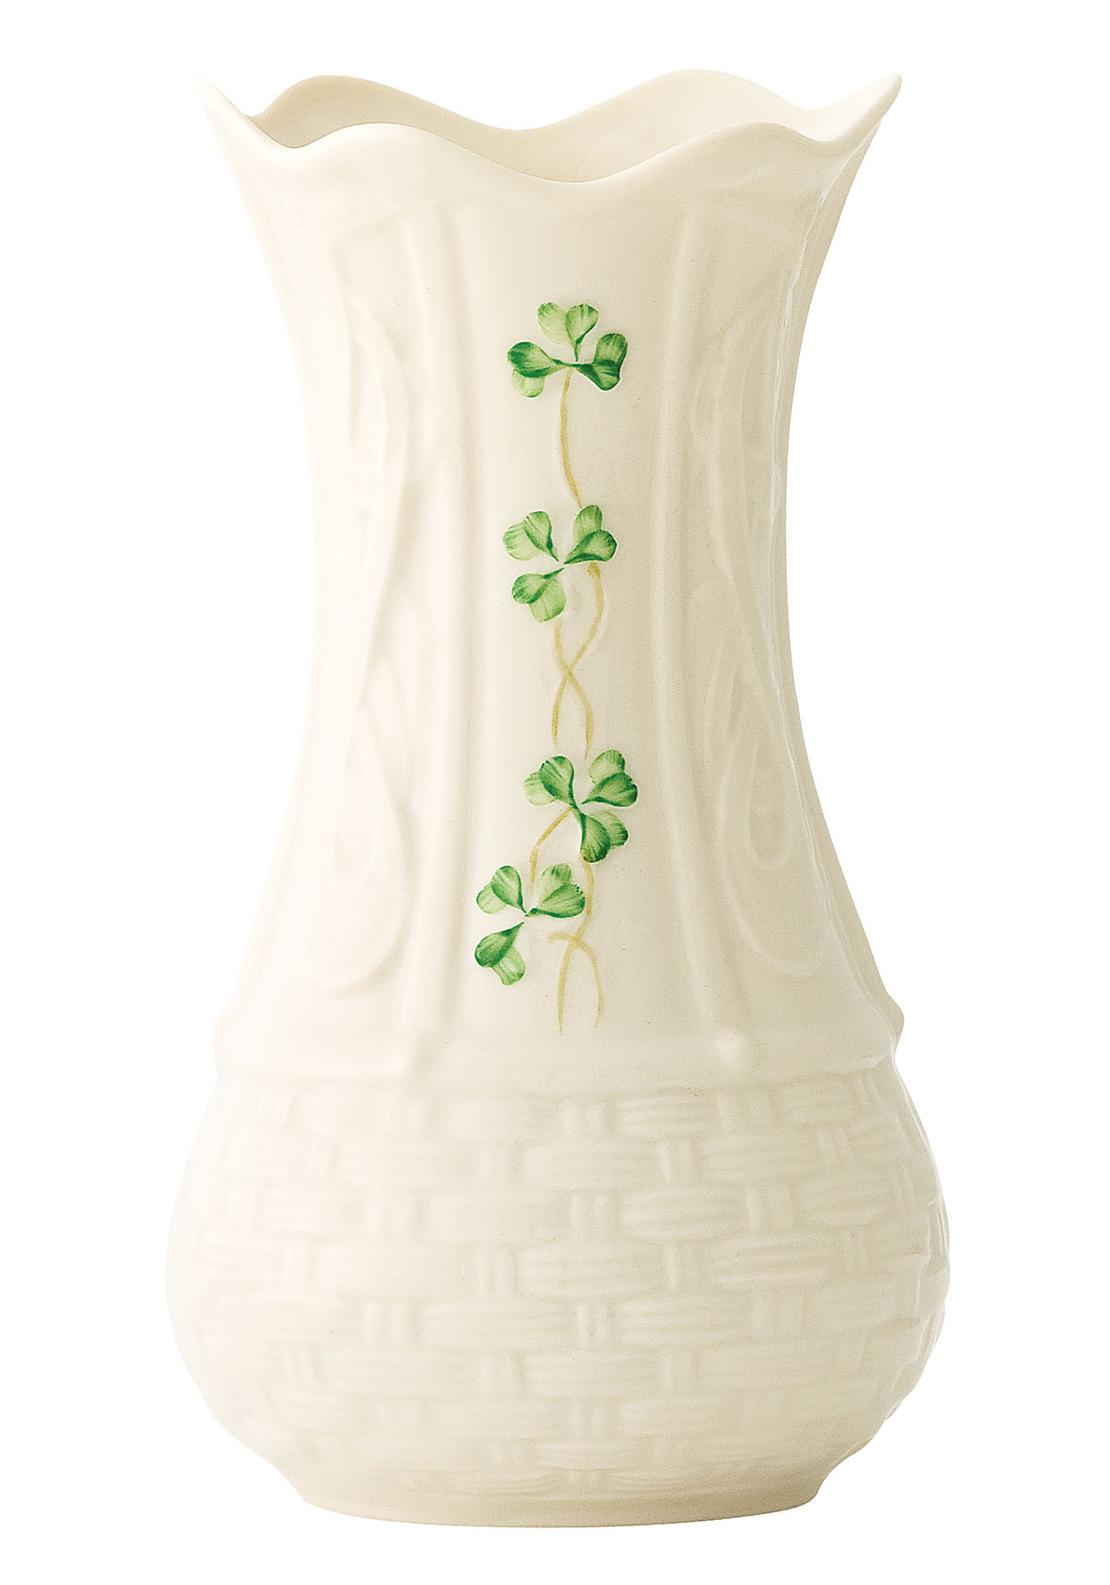 Belleek Kells Vase Ornament, 7in